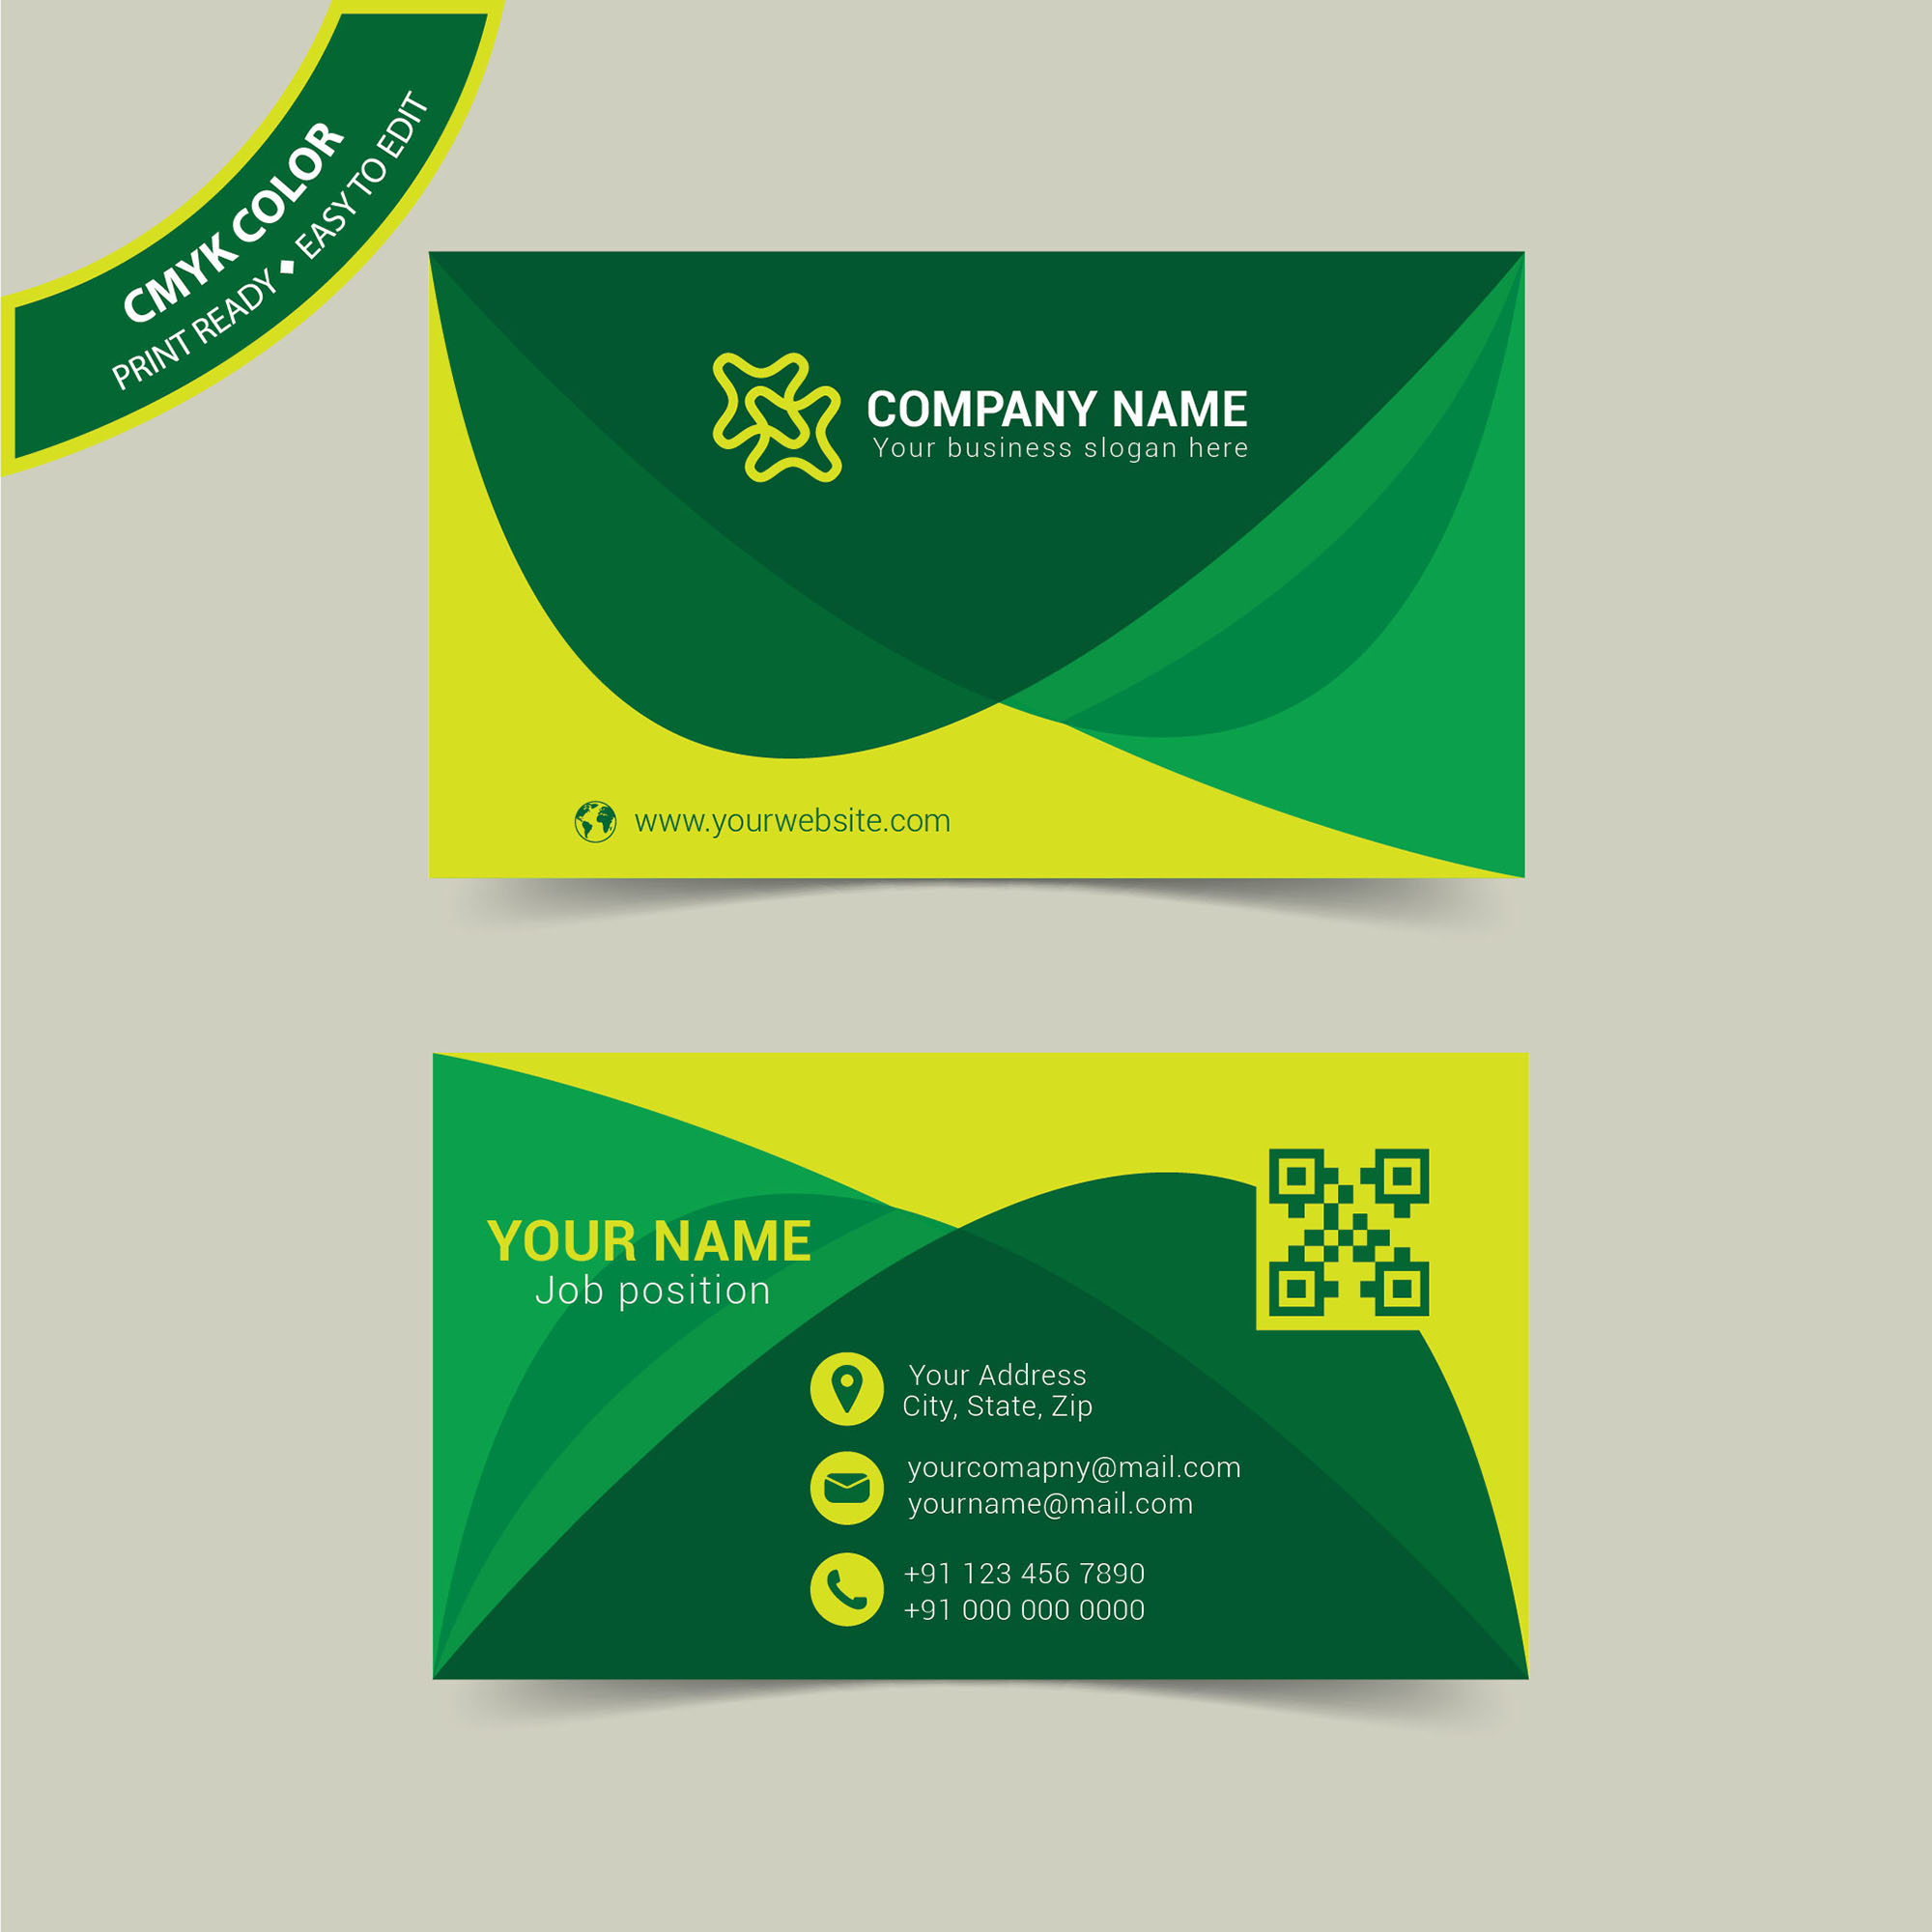 Elegant business card design free download wisxi business card business cards business card design business card template design templates fbccfo Image collections